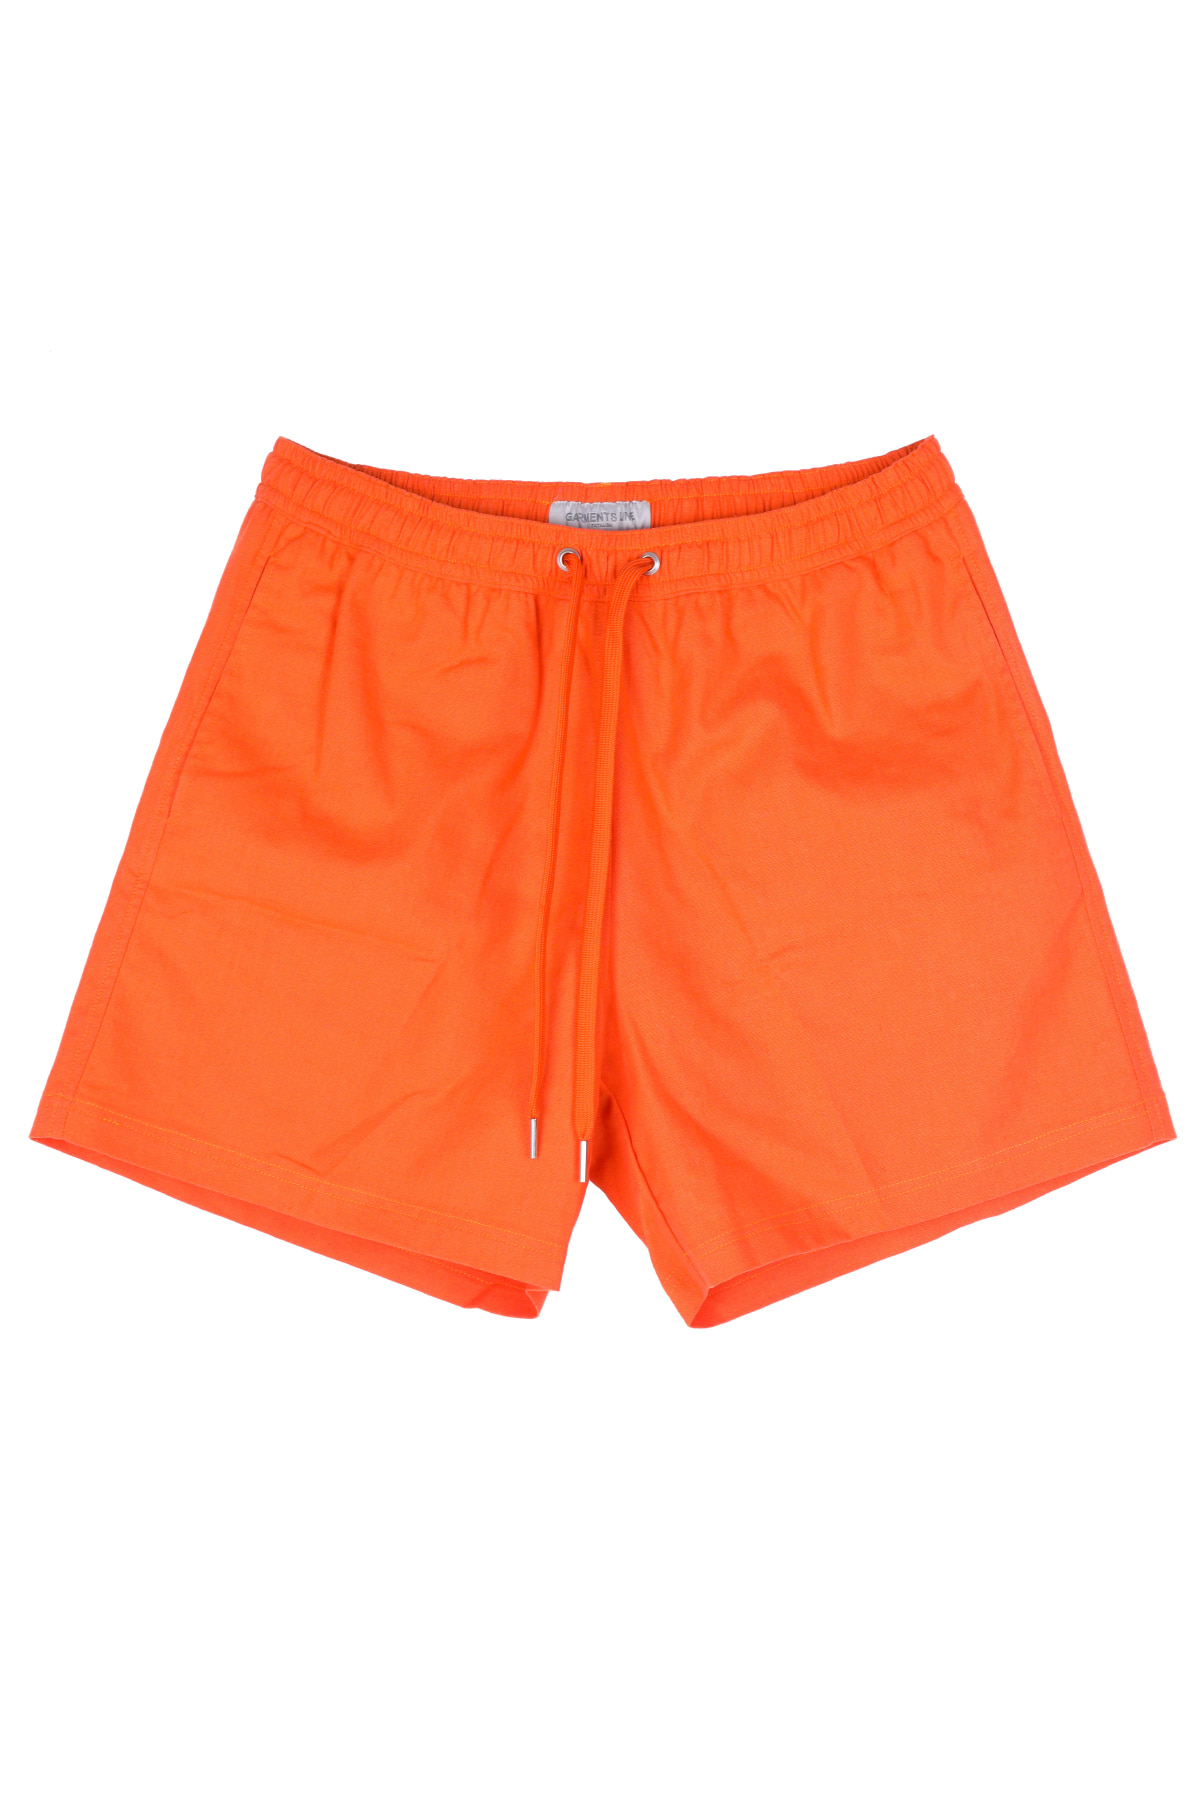 #G007 Linen short pants  (orange)